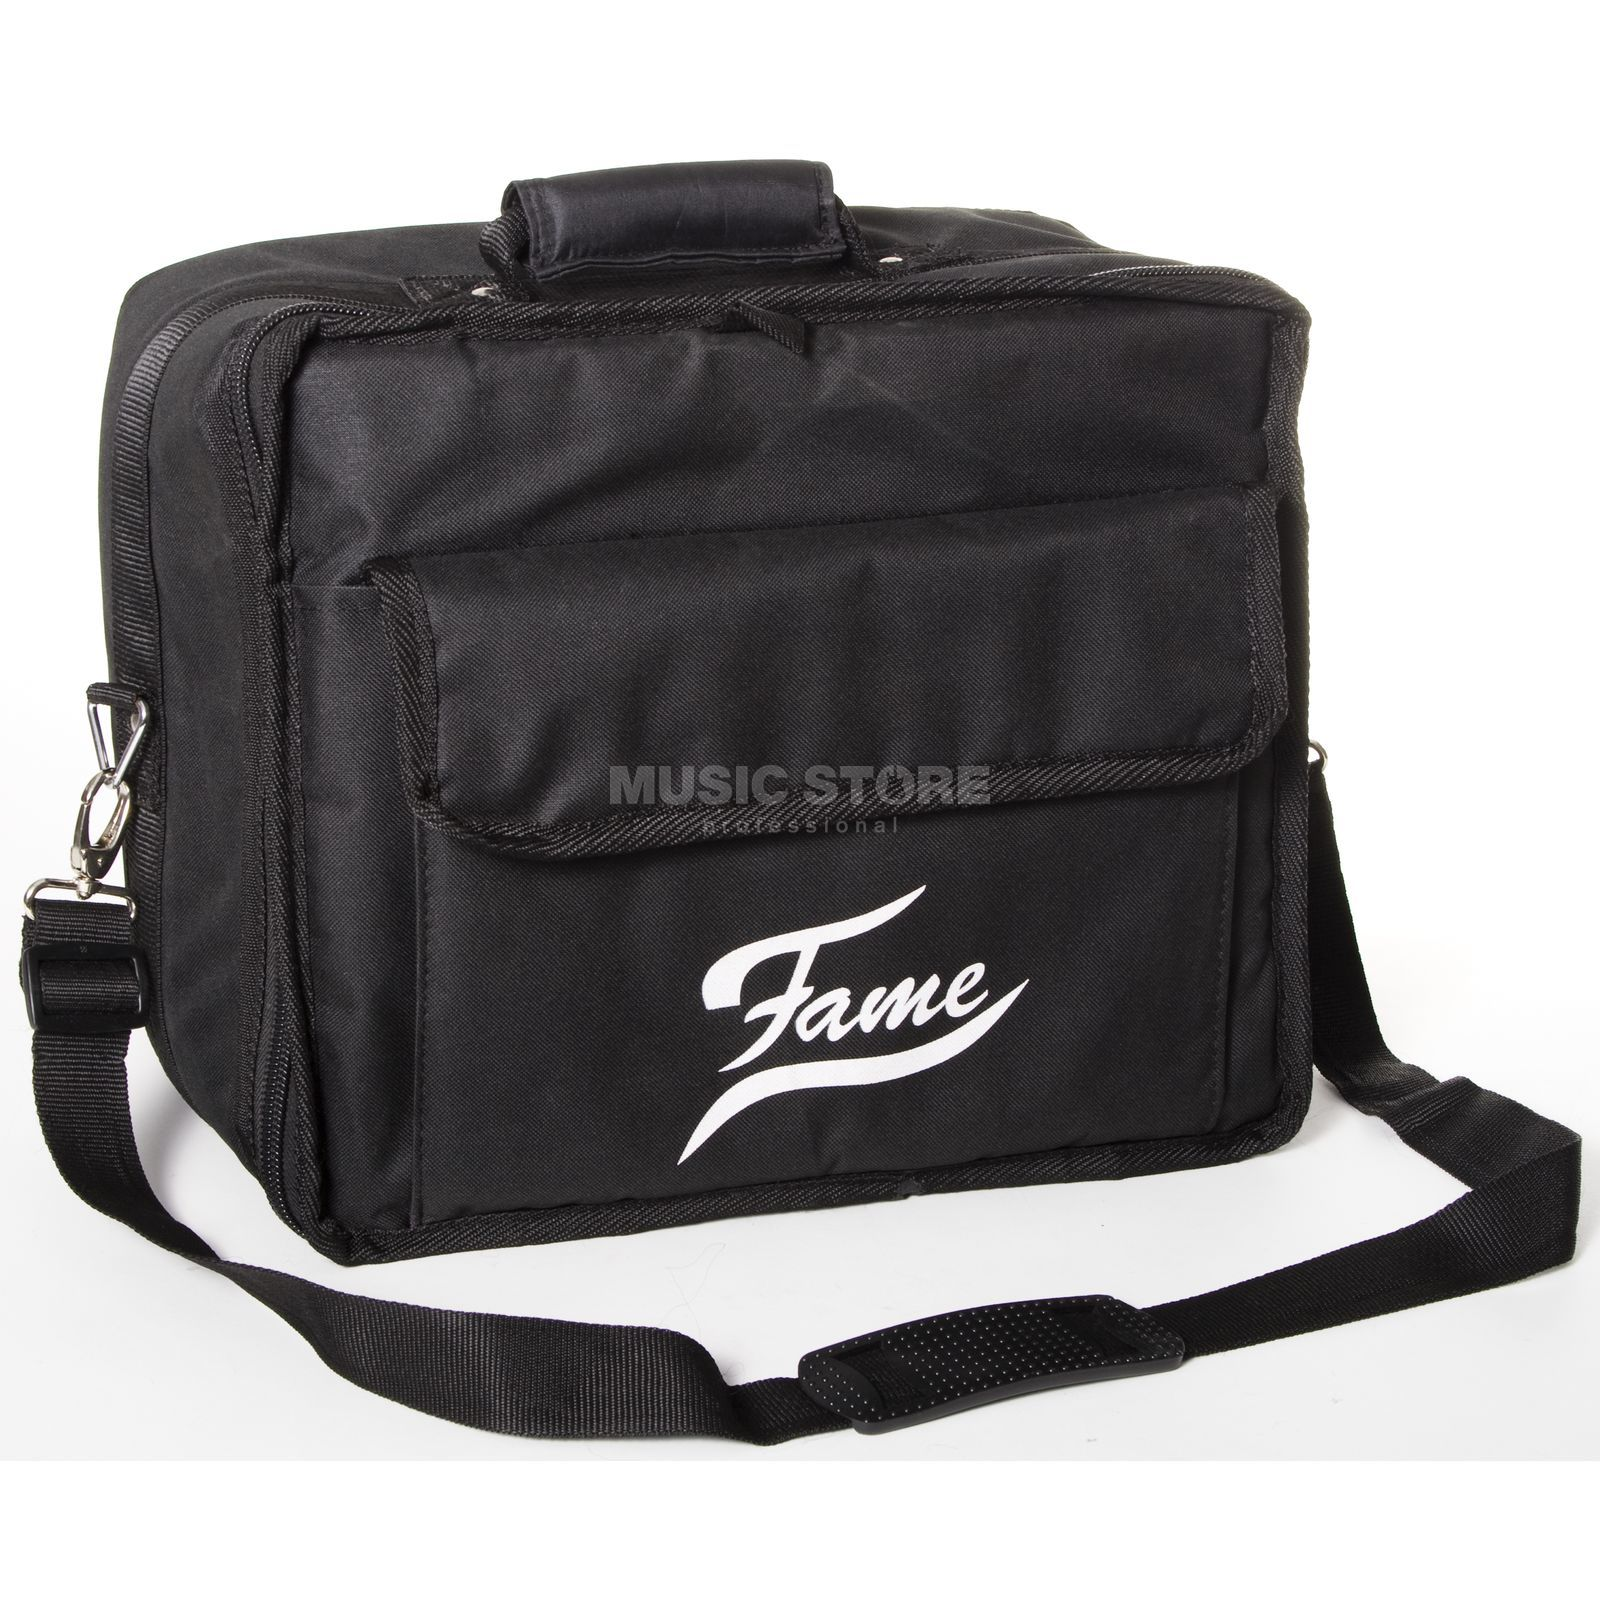 Fame Bolso para pedal doble DDP, negro Imagen del producto